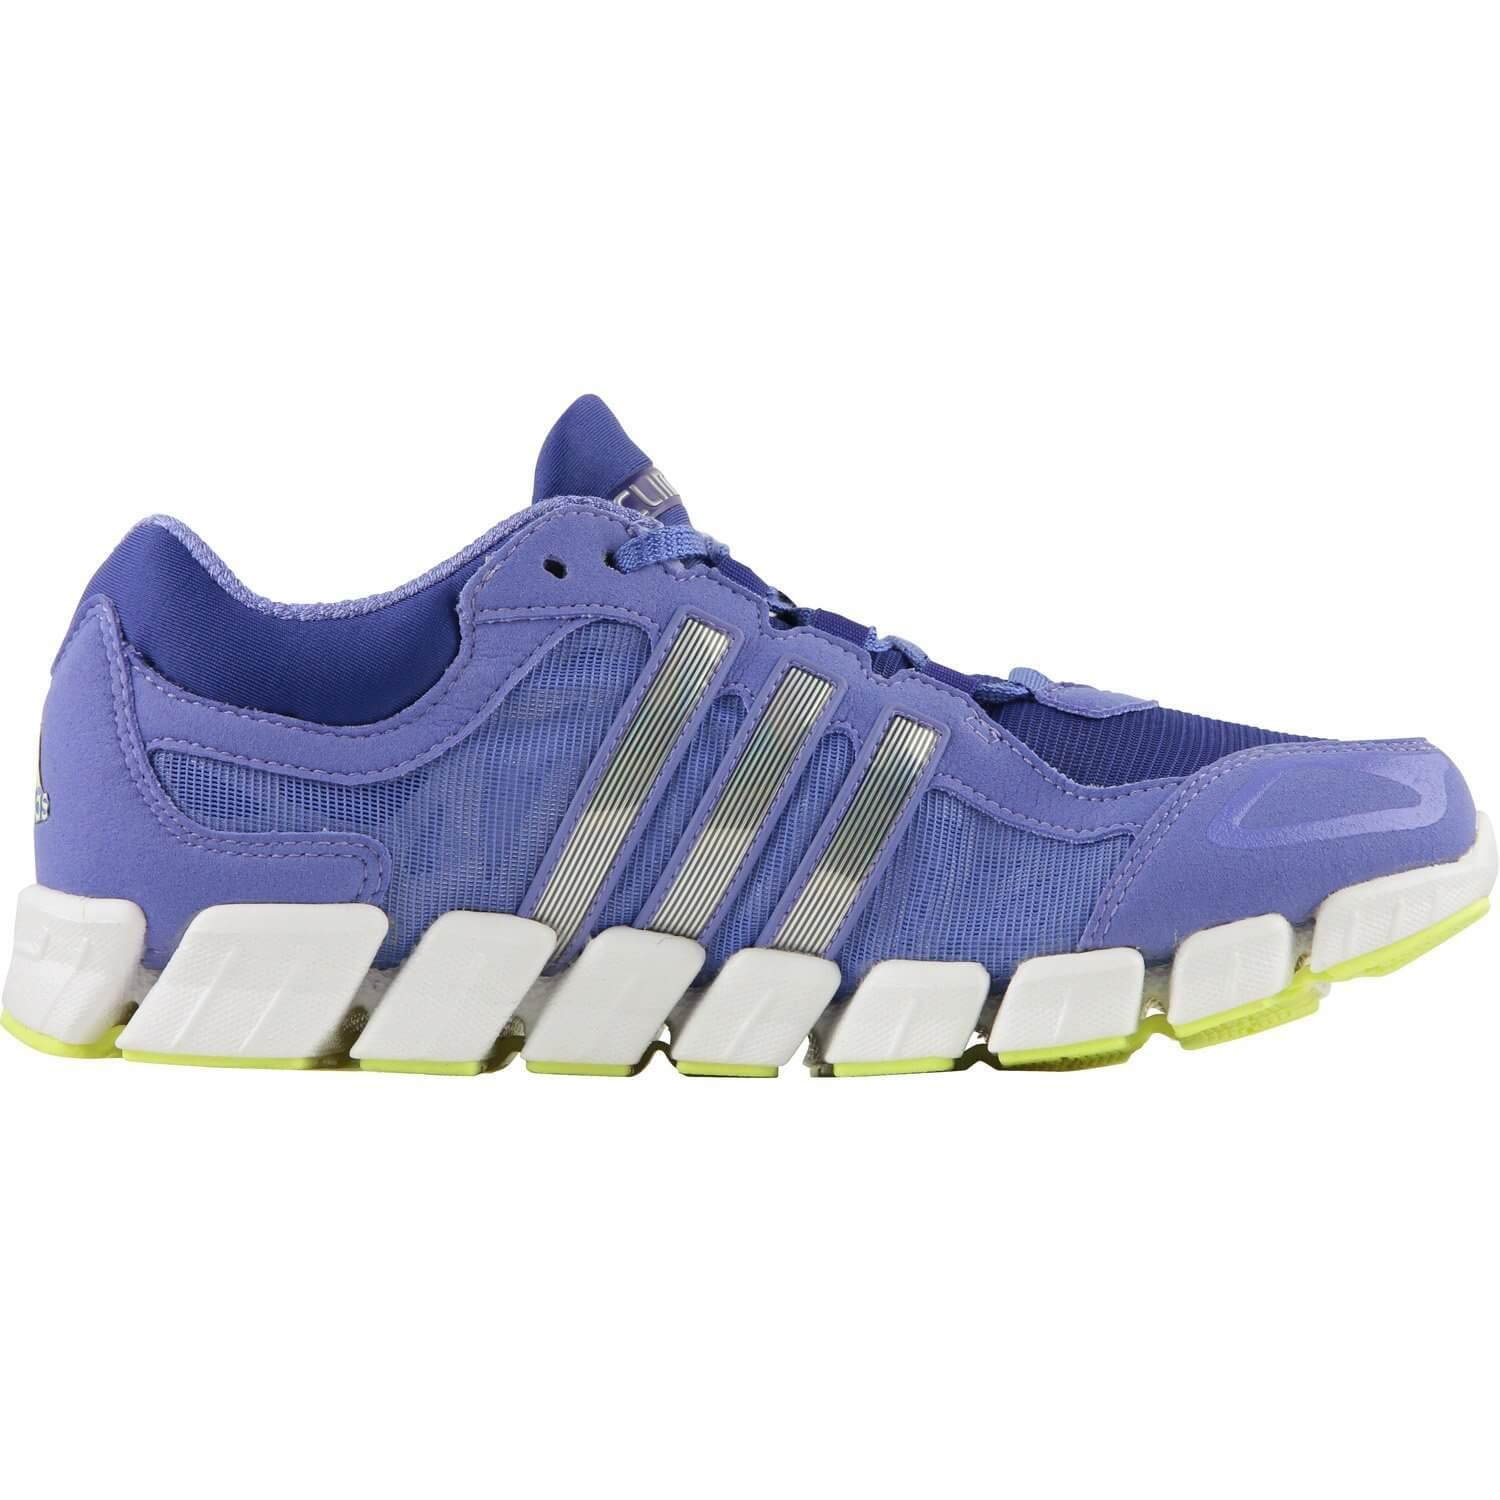 hot sale online bac79 5dcb9 ... A cushioned and flexible midsole promote a natural stride while wearing  the Adidas Climacool Freshride ...